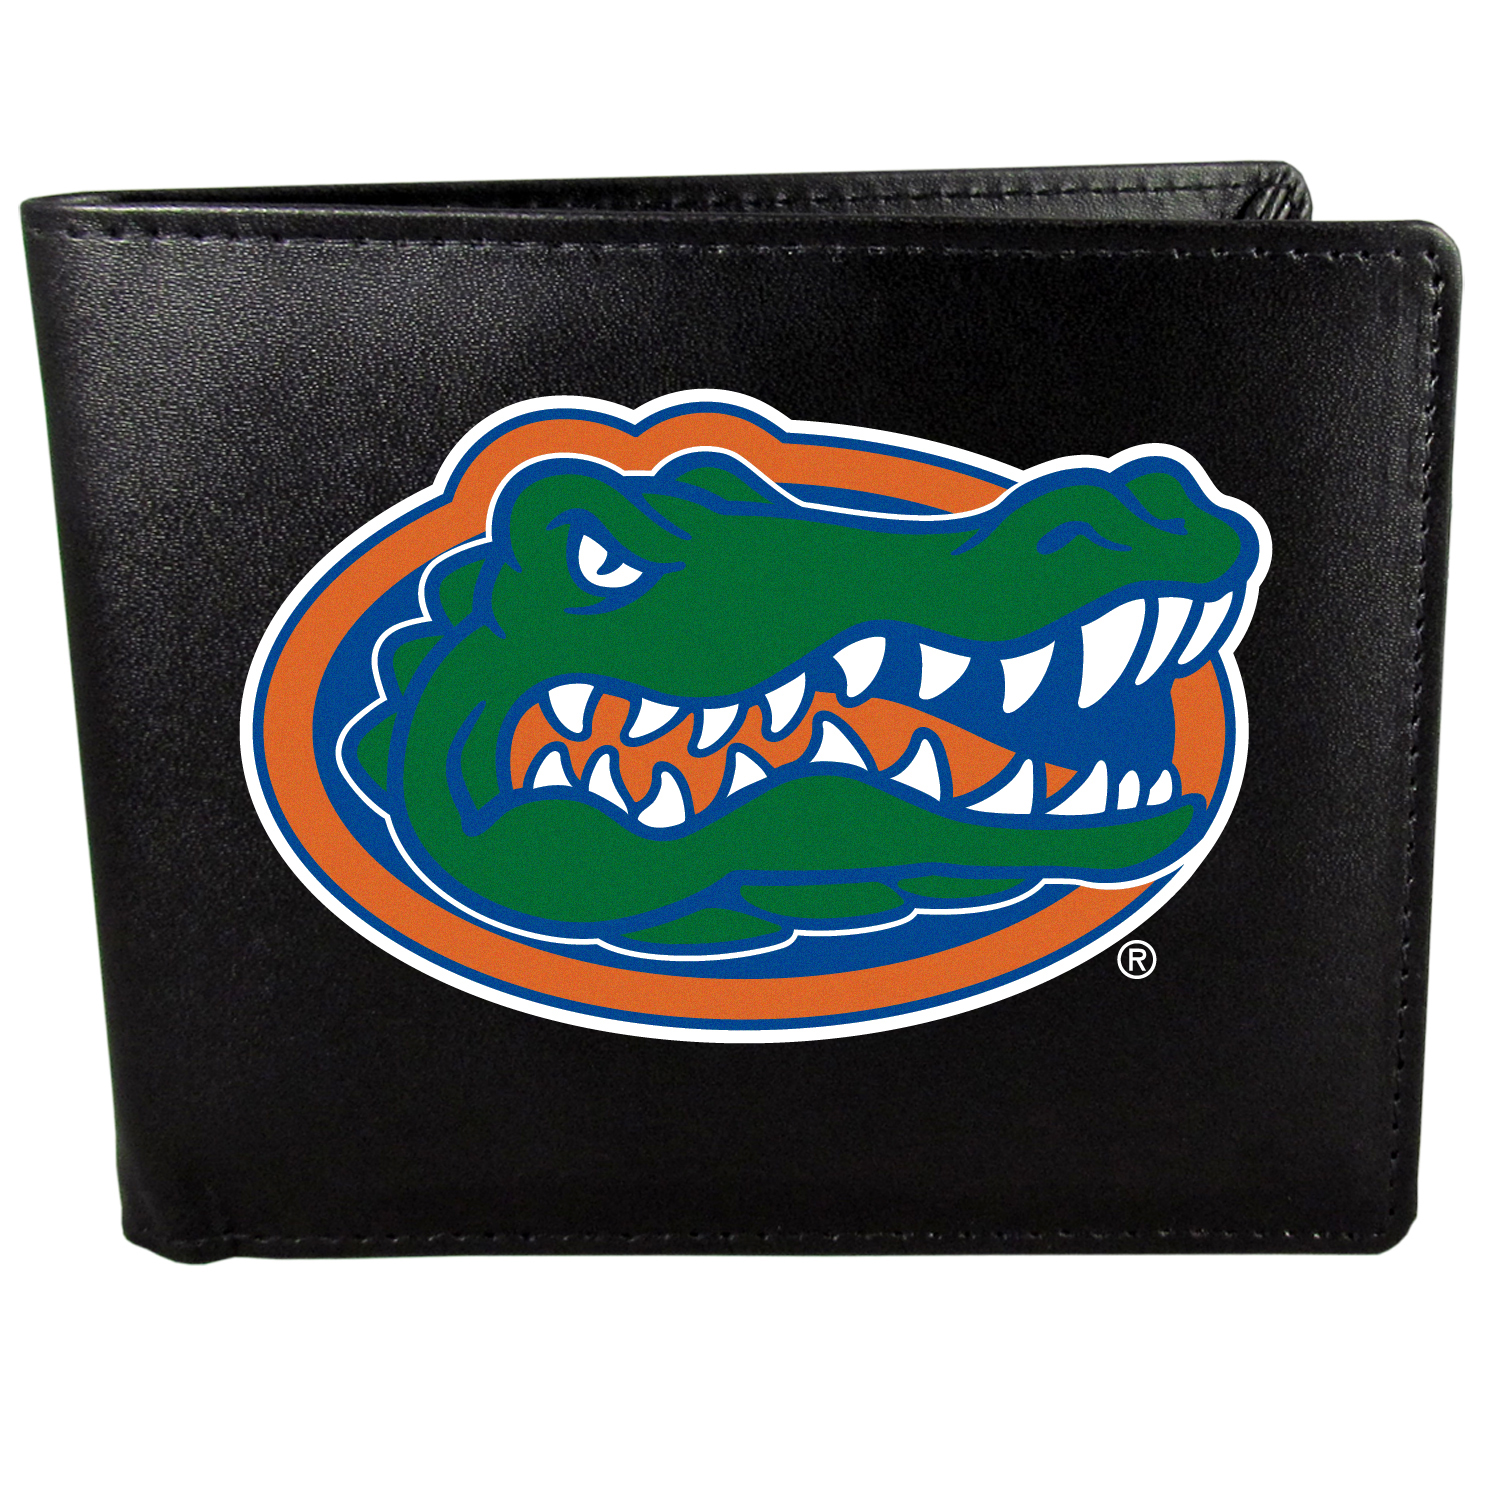 Florida Gators Bi-fold Wallet Large Logo - Sports fans do not have to sacrifice style with this classic bi-fold wallet that sports the Florida Gators?extra large logo. This men's fashion accessory has a leather grain look and expert craftmanship for a quality wallet at a great price. The wallet features inner credit card slots, windowed ID slot and a large billfold pocket. The front of the wallet features a printed team logo.